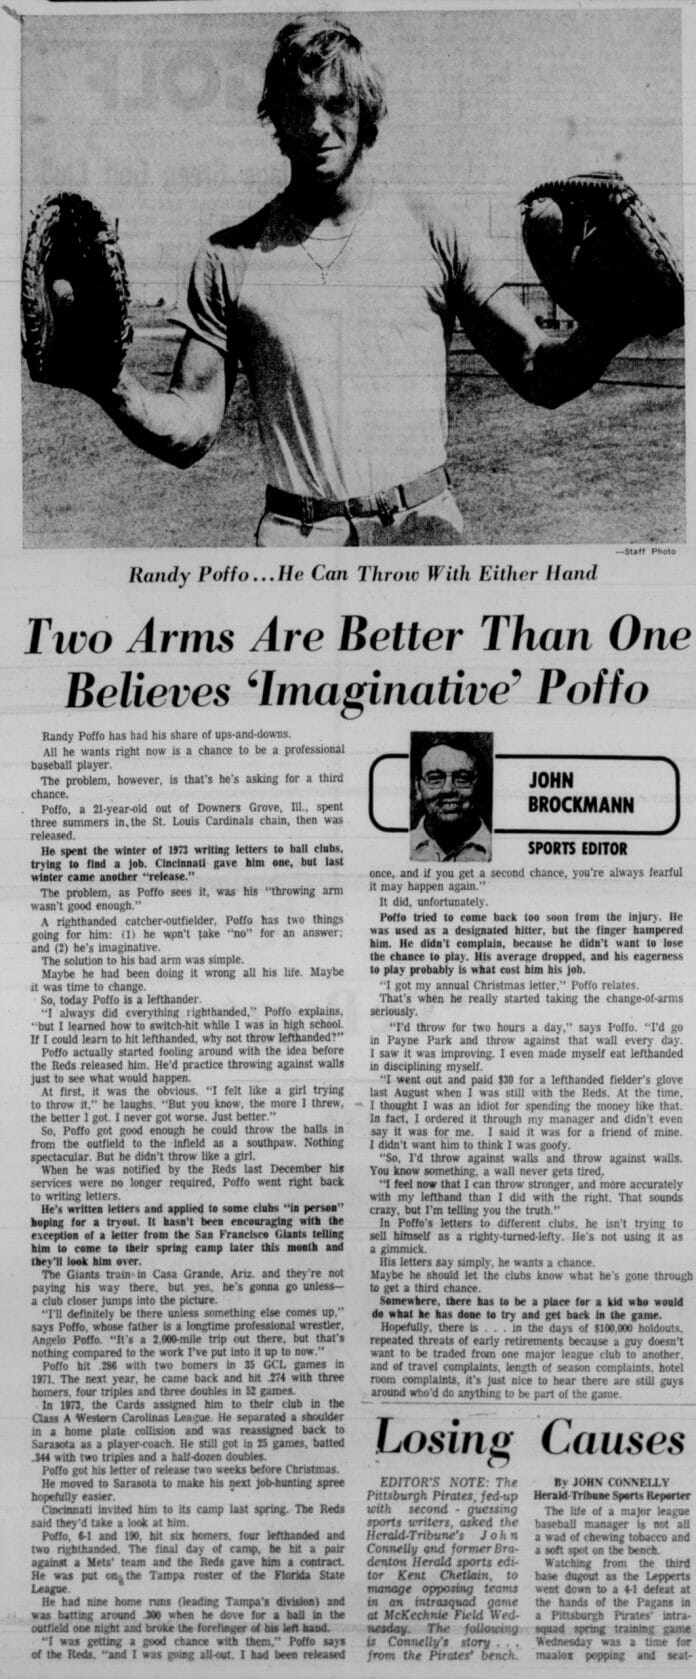 Randy Poffo learns to throw with both hands! Newspaper clipping from the May 6th, 1975 edition of Sarasota Herald Tribune.